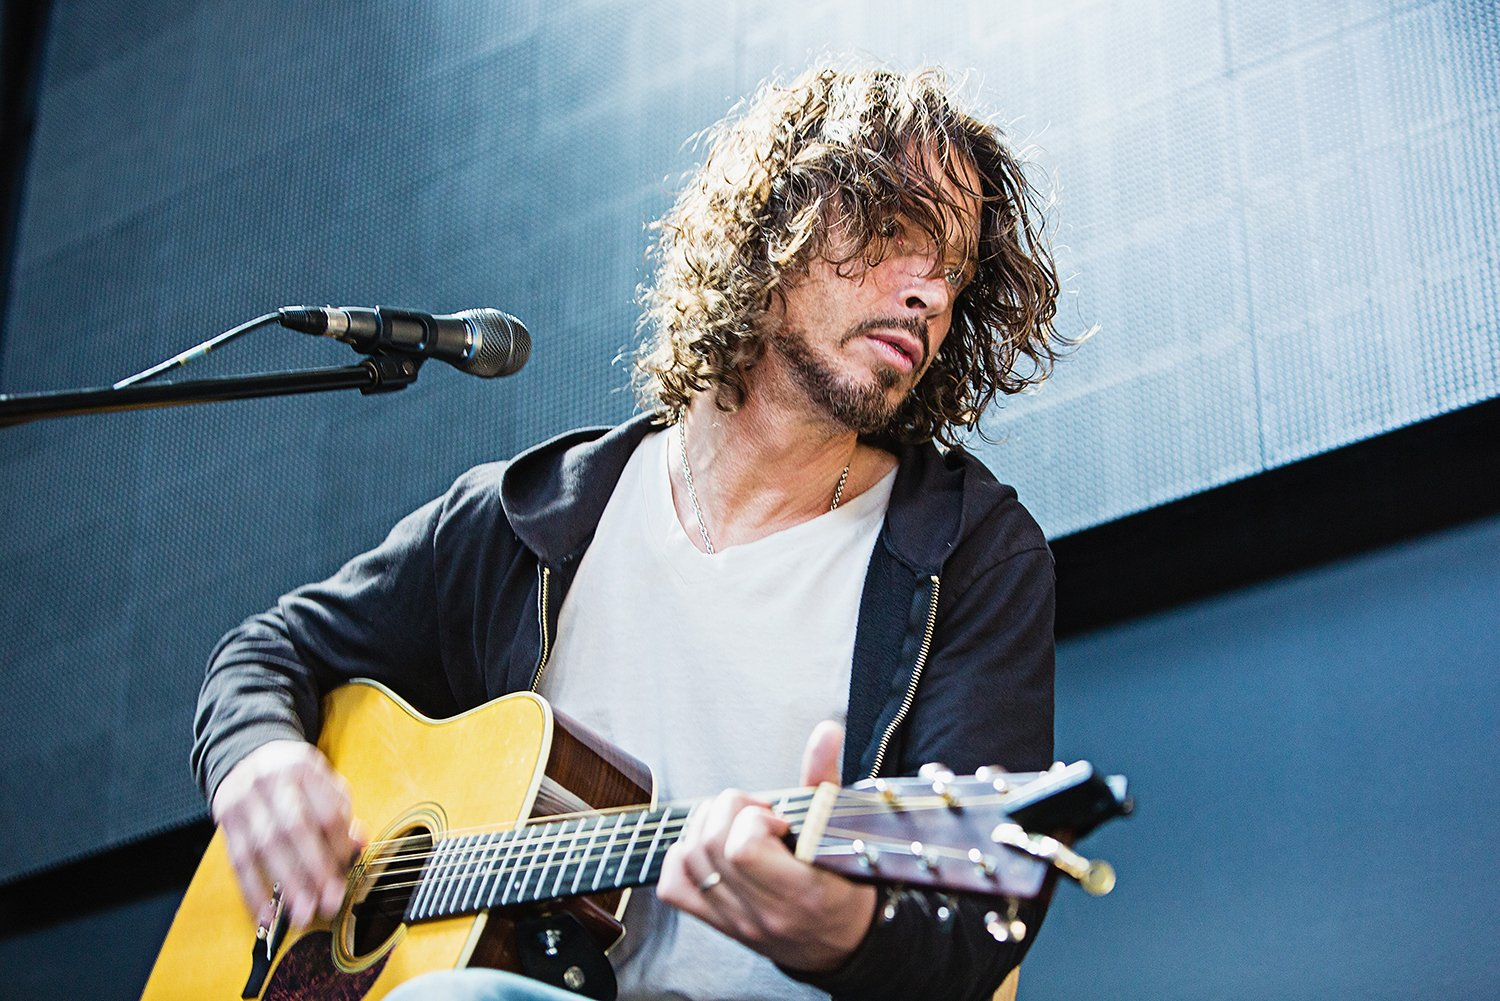 Hear 8 of Chris Cornell's great acoustic covers https://t.co/XEnHQr32K4 https://t.co/FQDYVt6awp